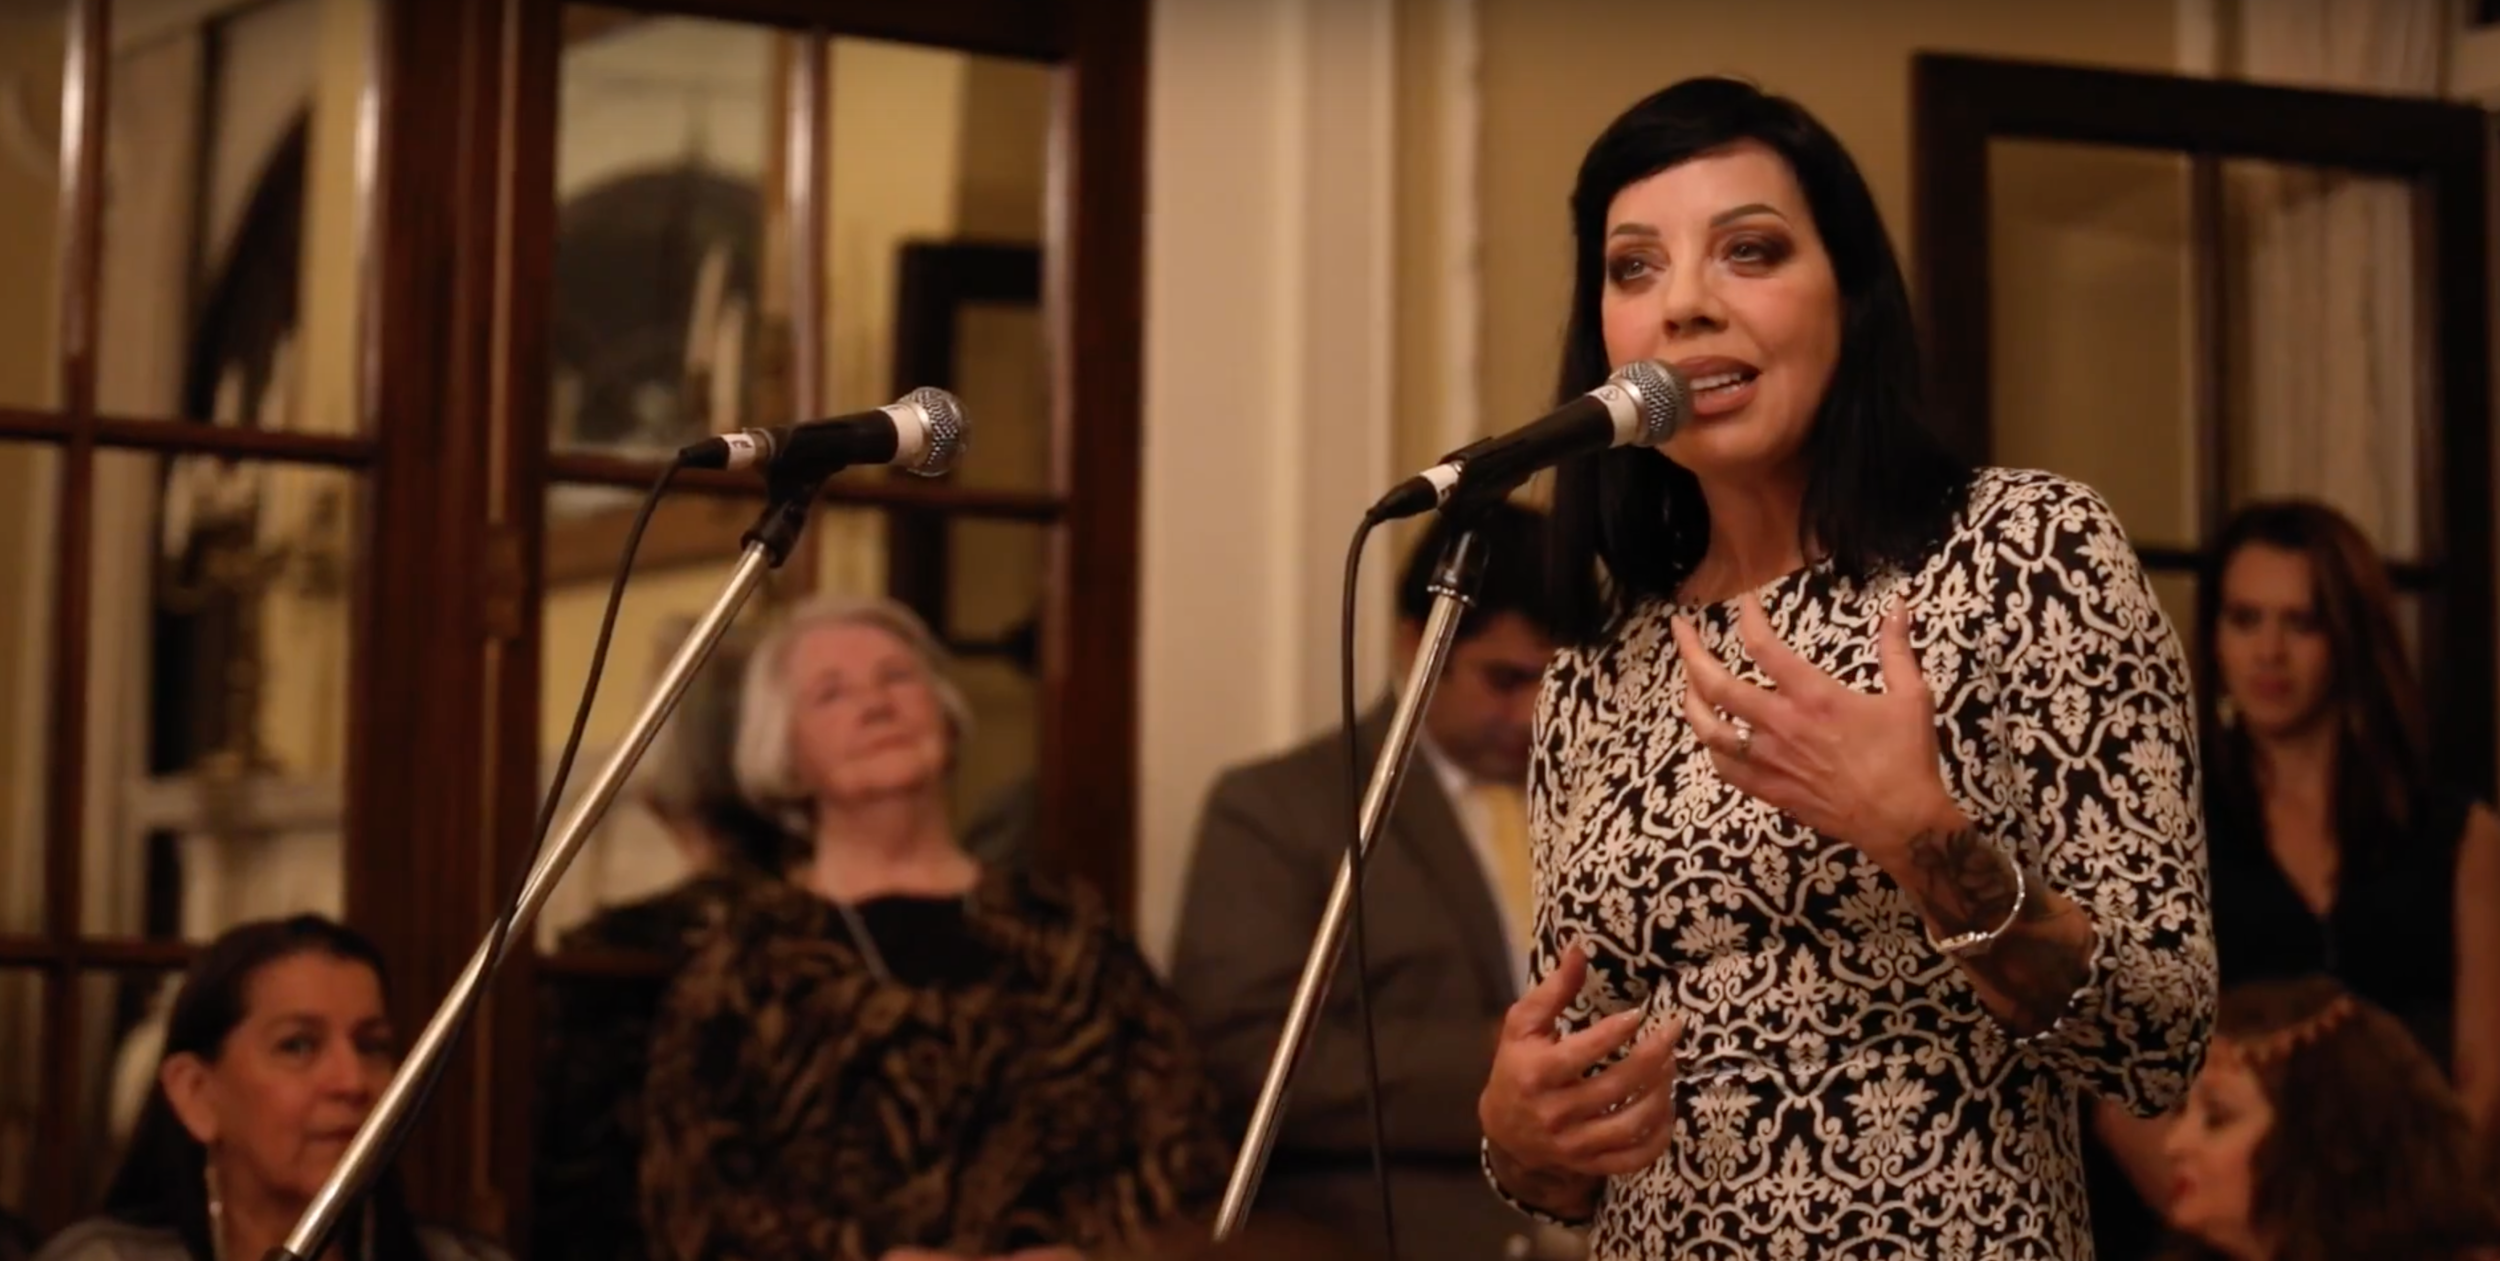 Bif Naked performs at the UN Women gala.